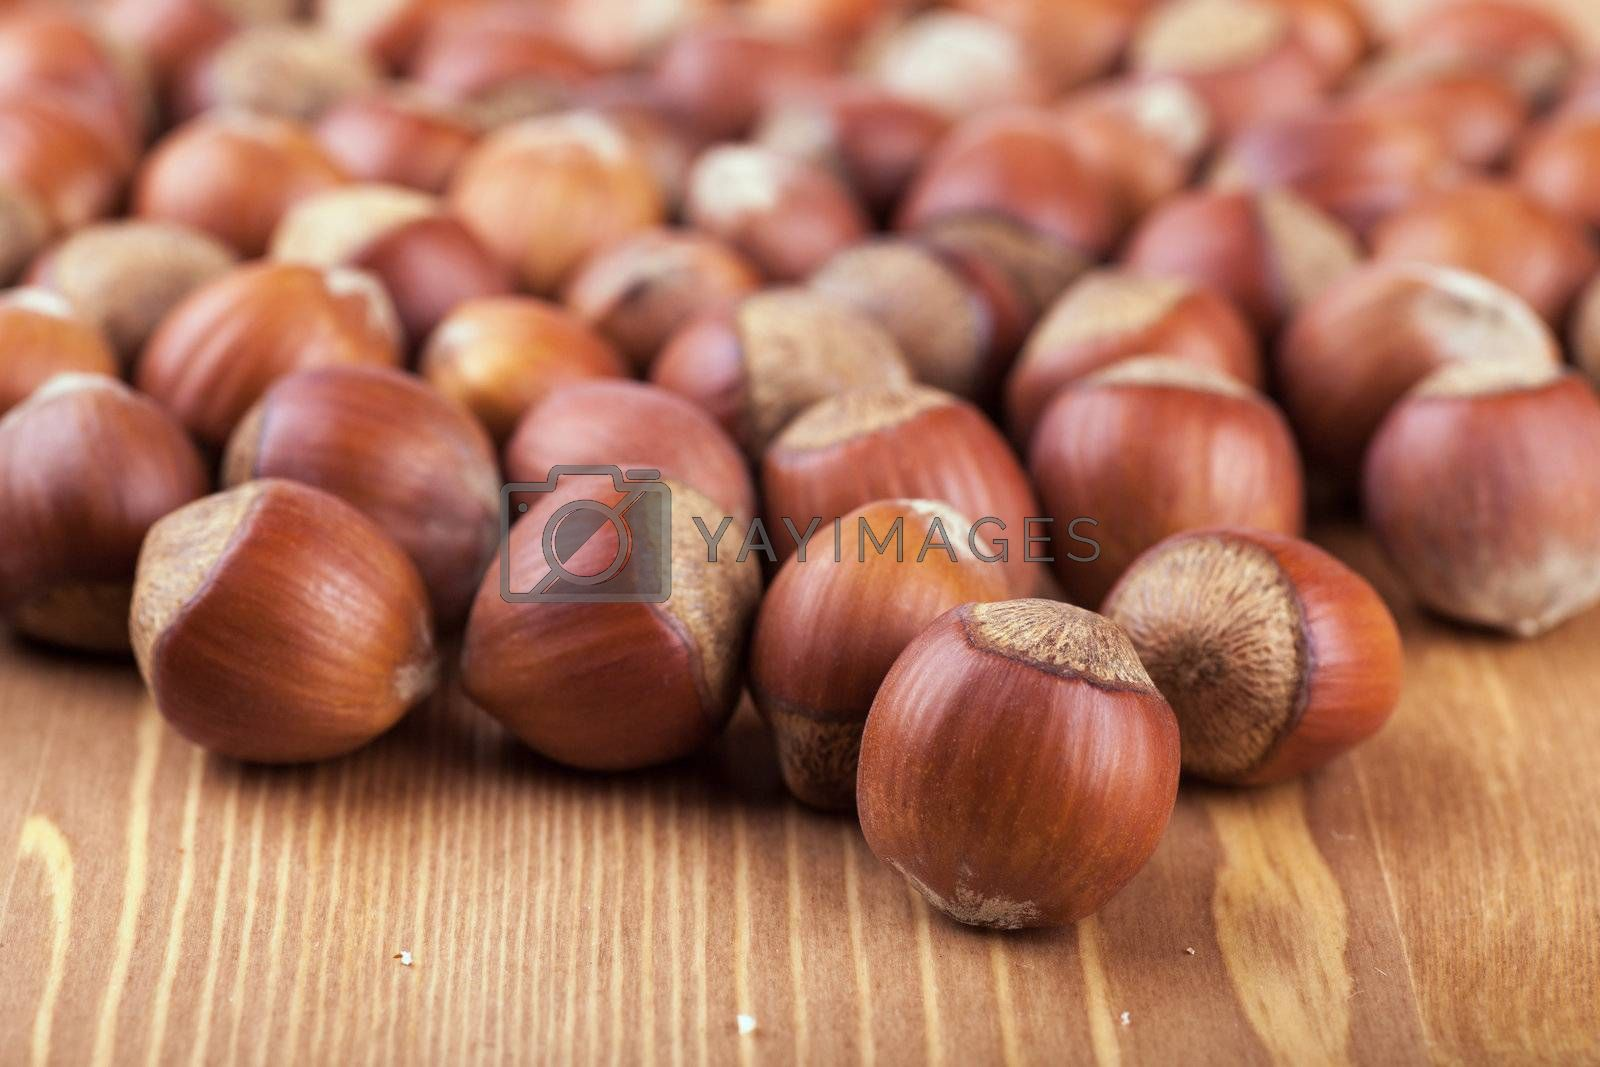 Closeup view of many hazelnuts on a table